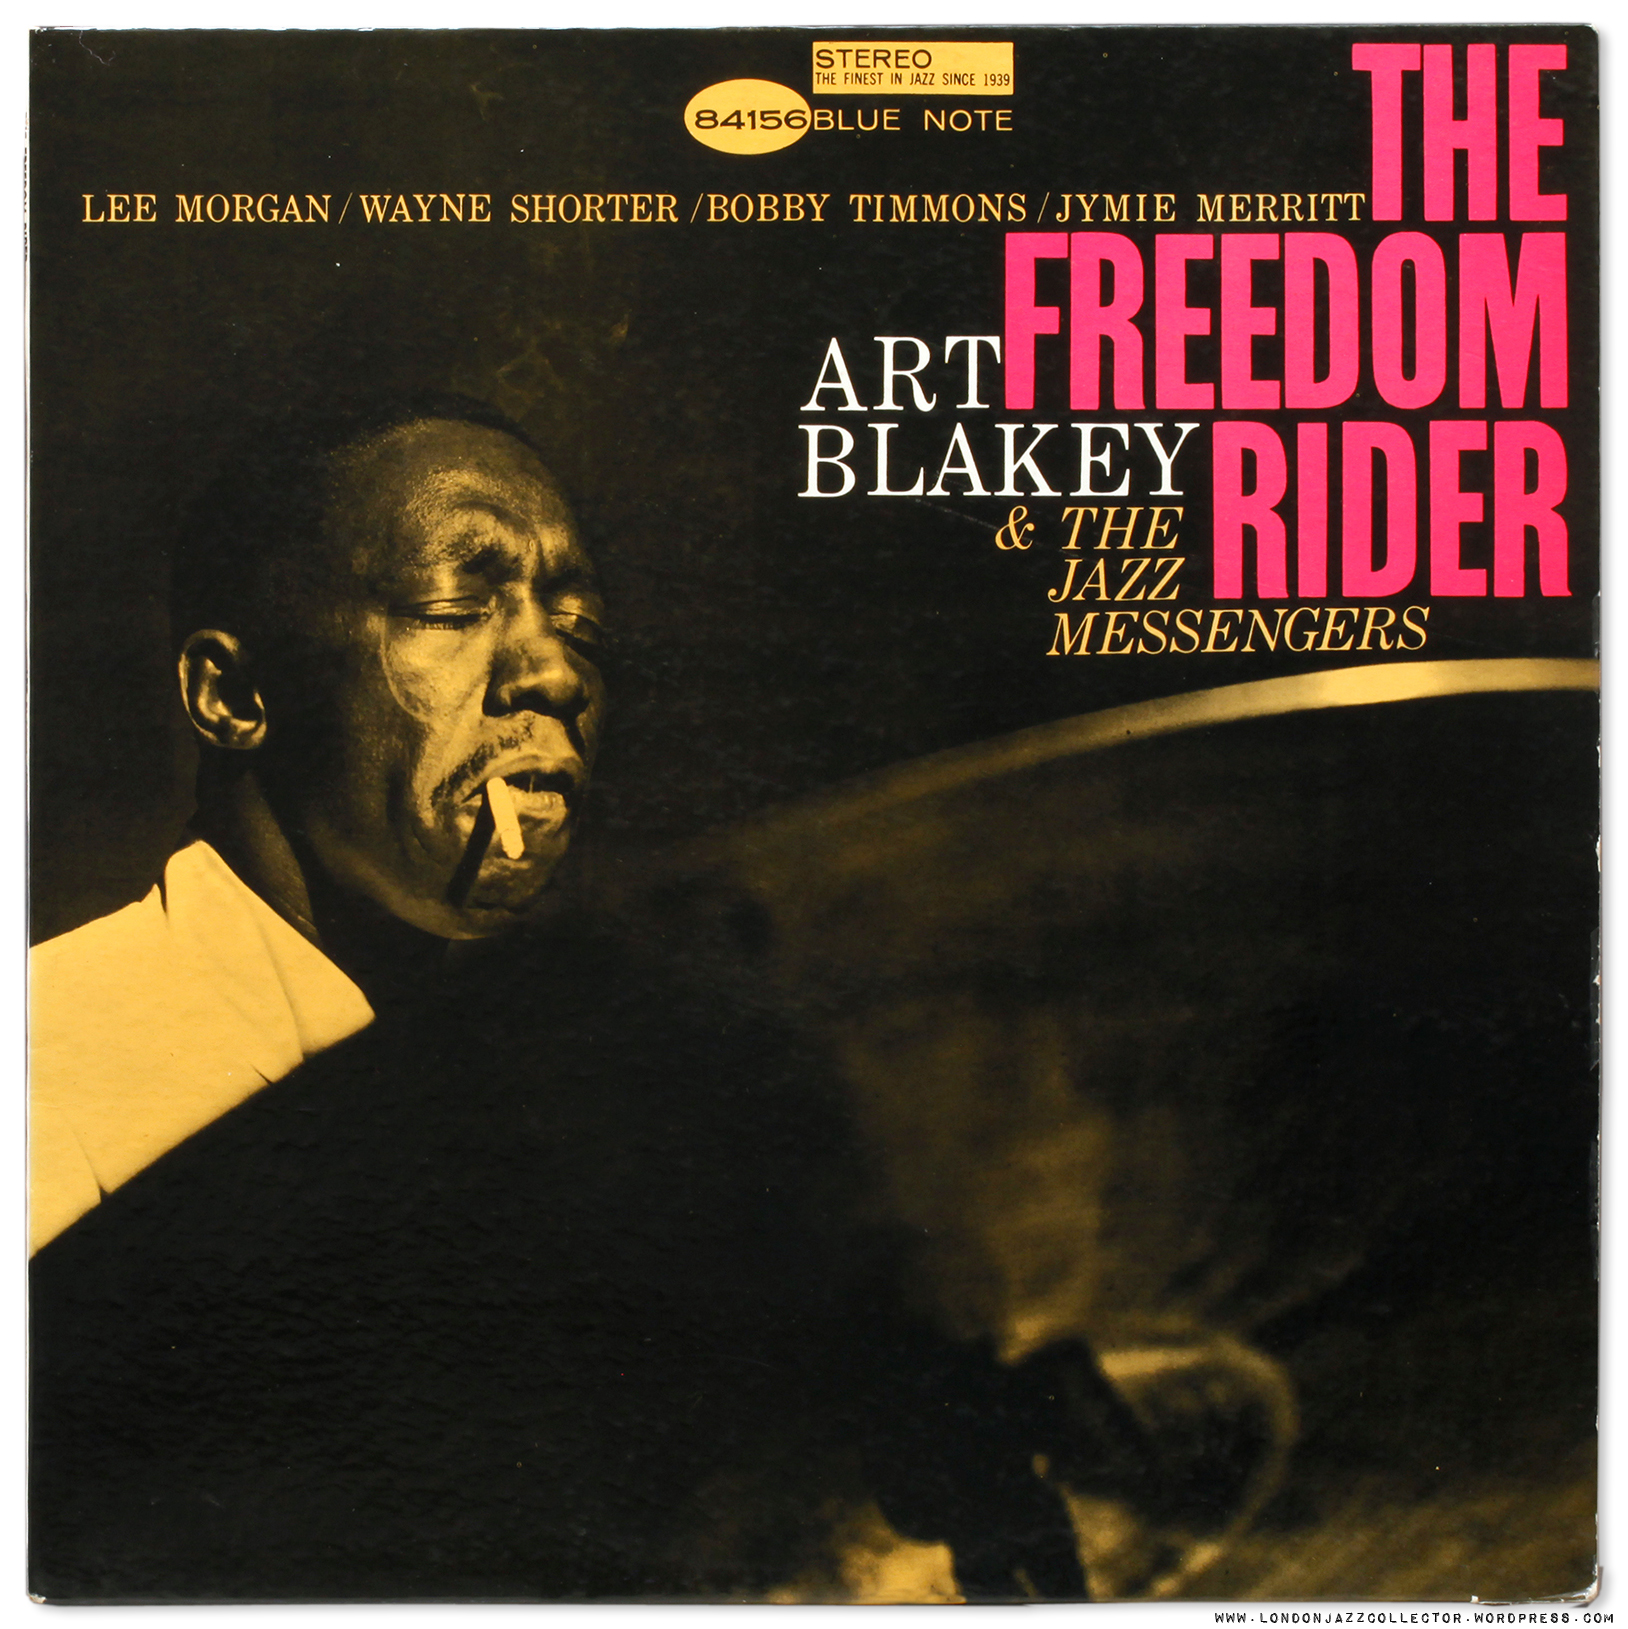 Art Blakey The Freedom Rider 1961 Blue Note